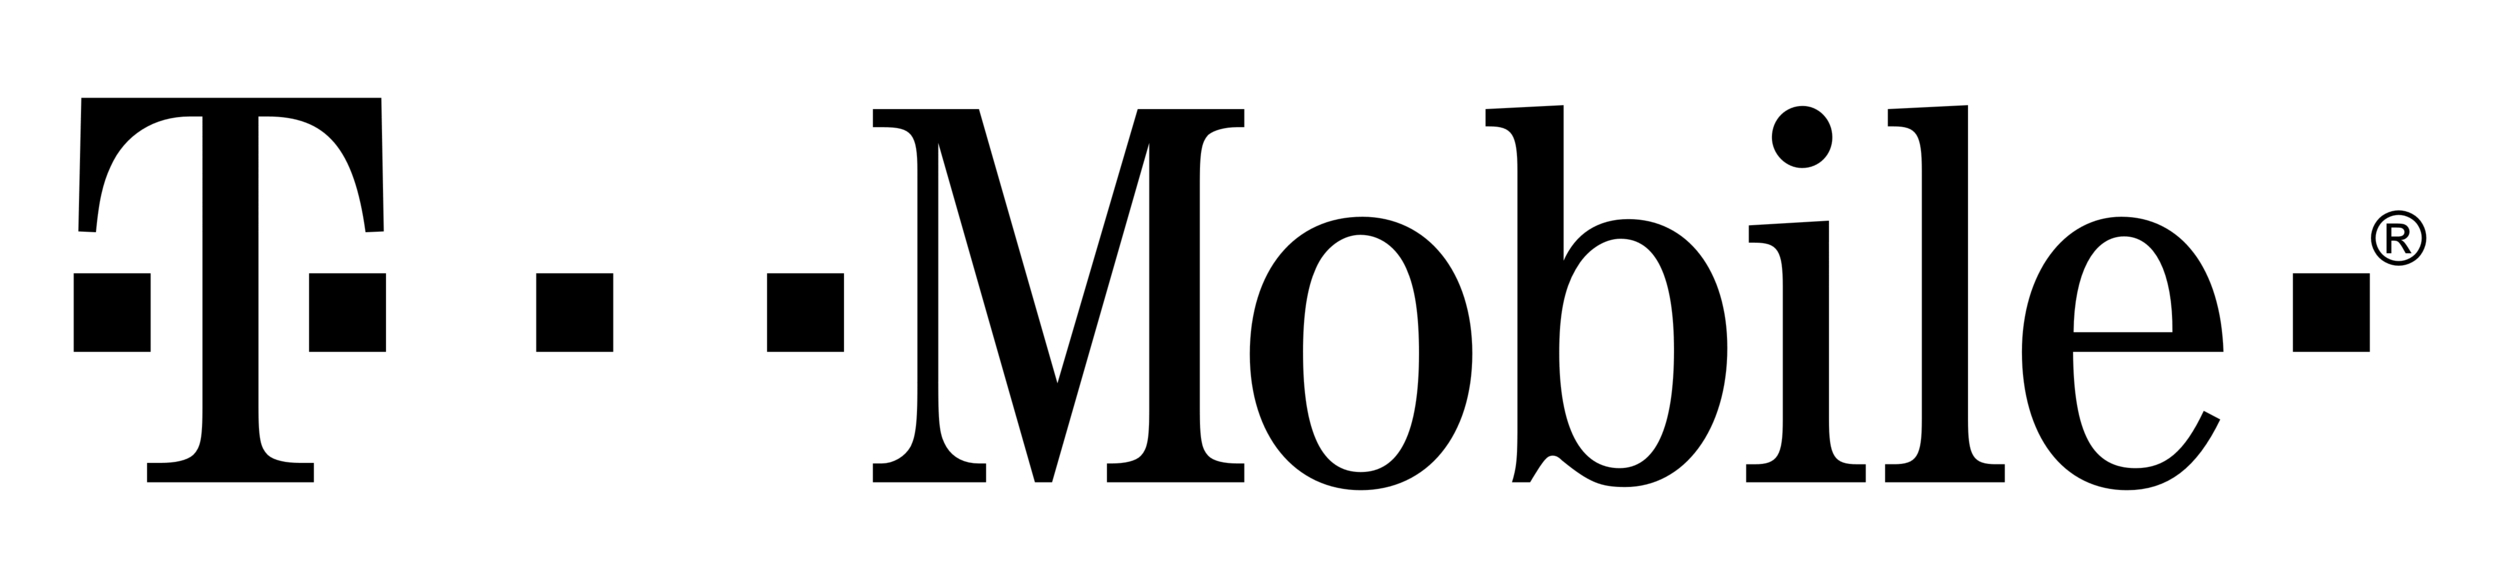 T-Mobile_logo_bw.png